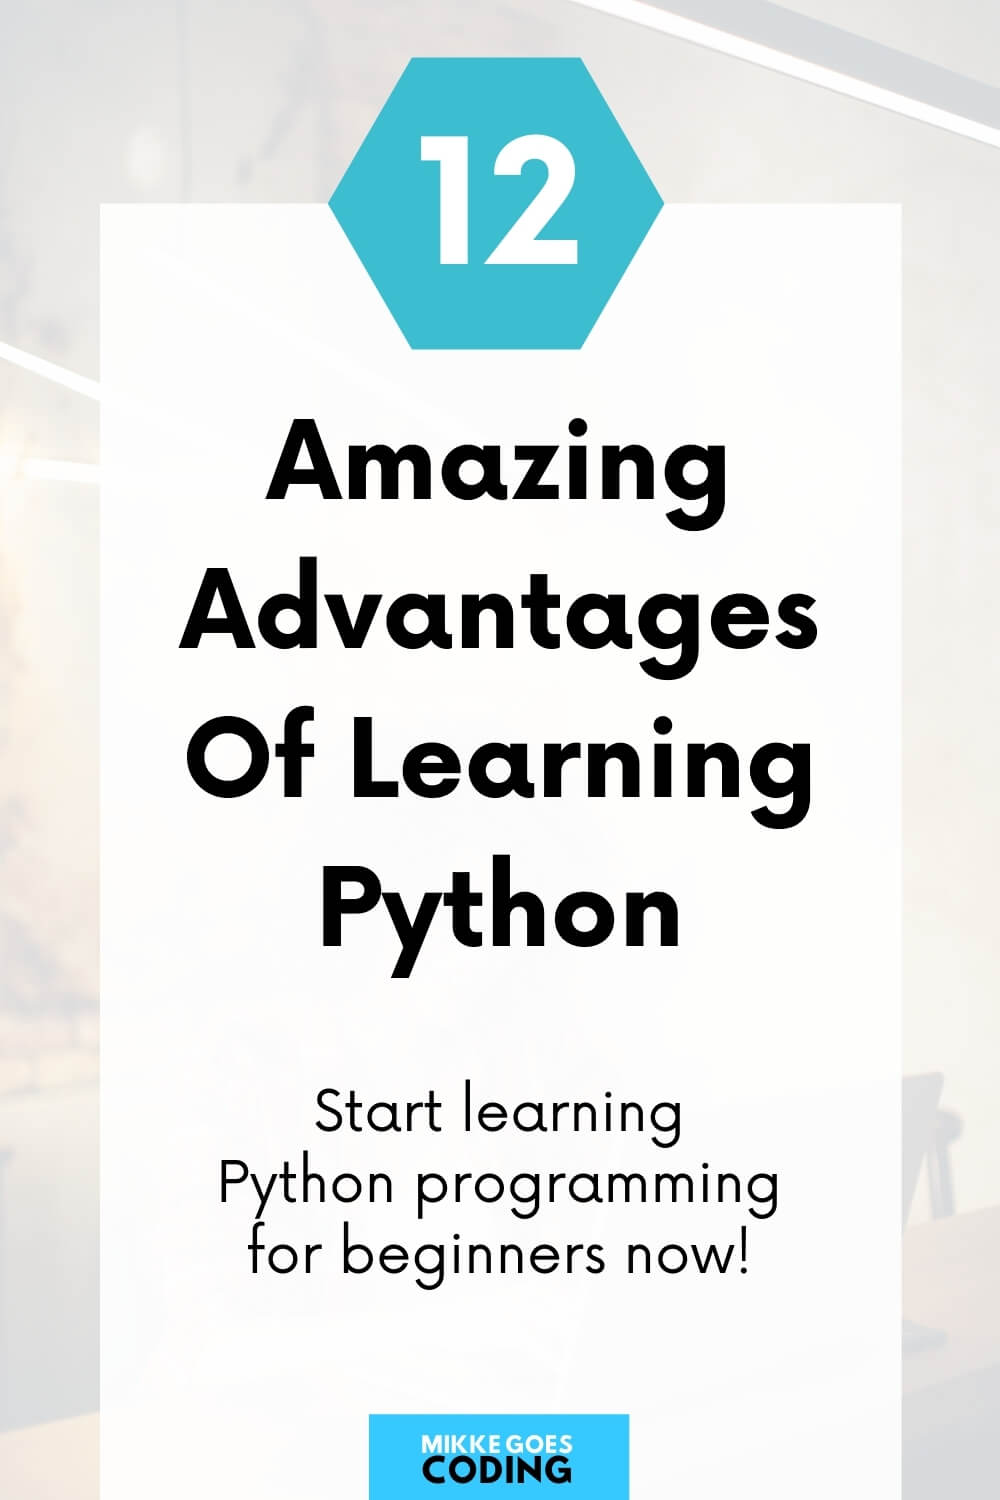 Advantages of learning Python coding